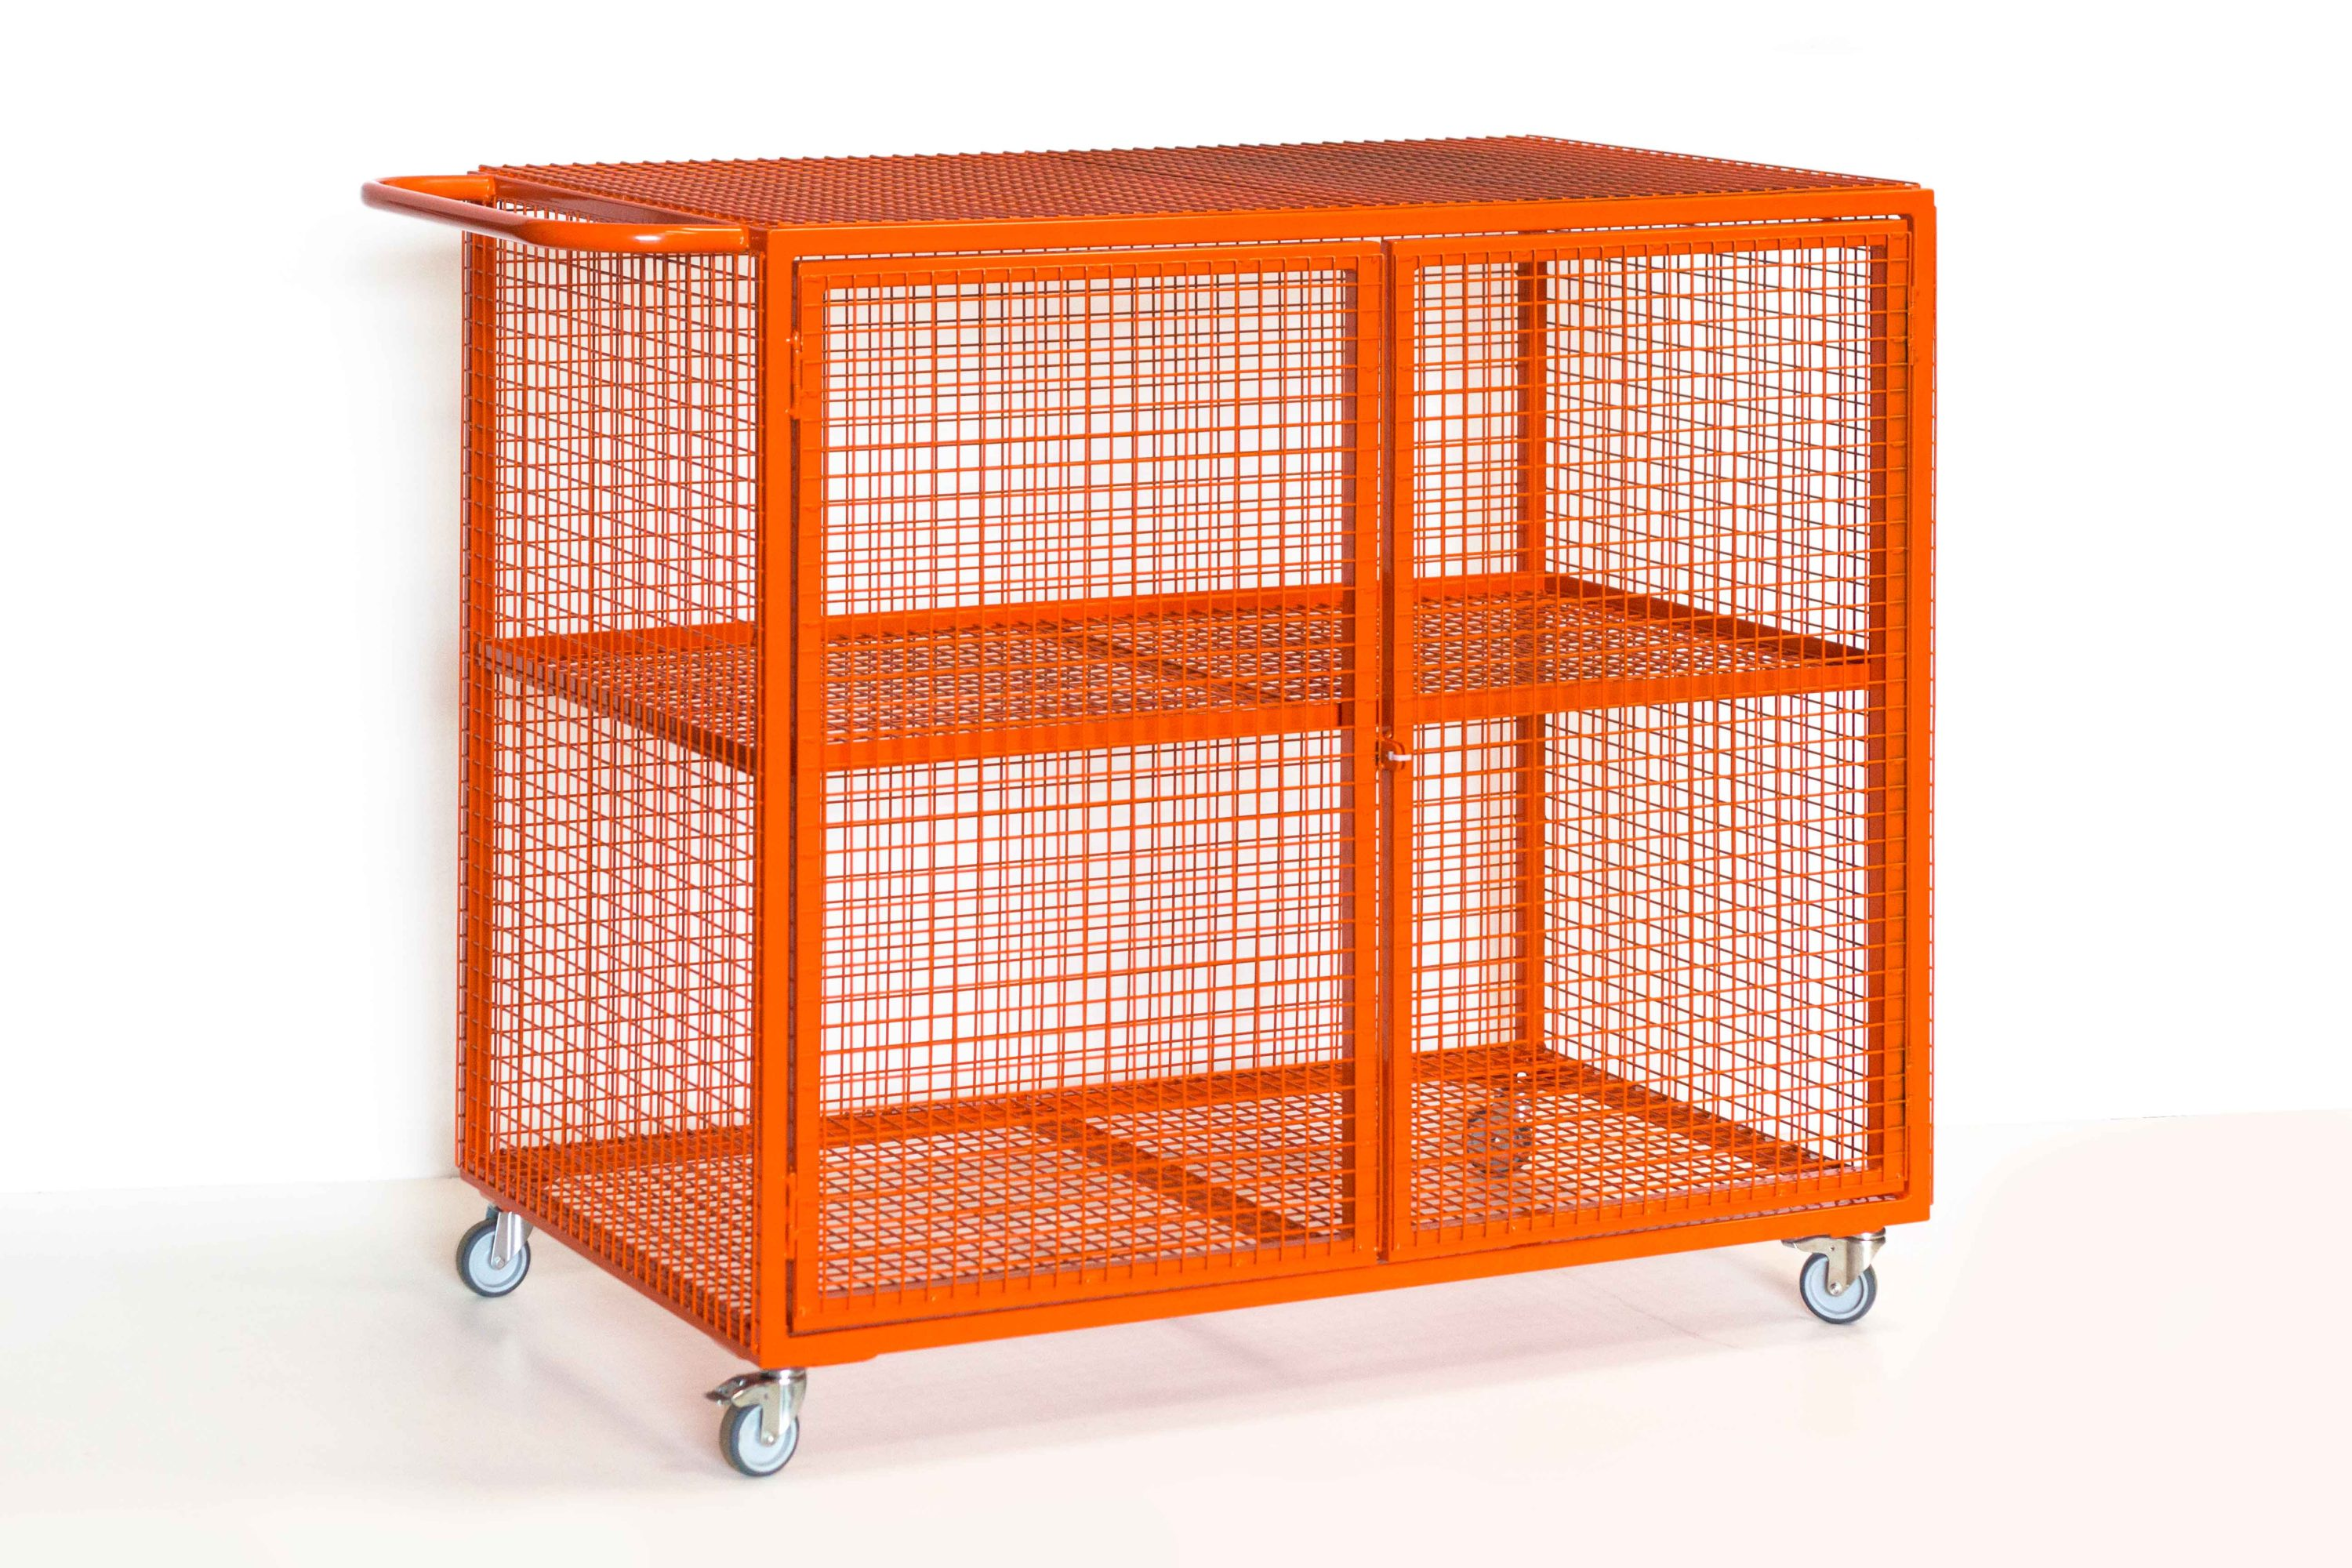 Mobile Storage Cages Athletic Direct